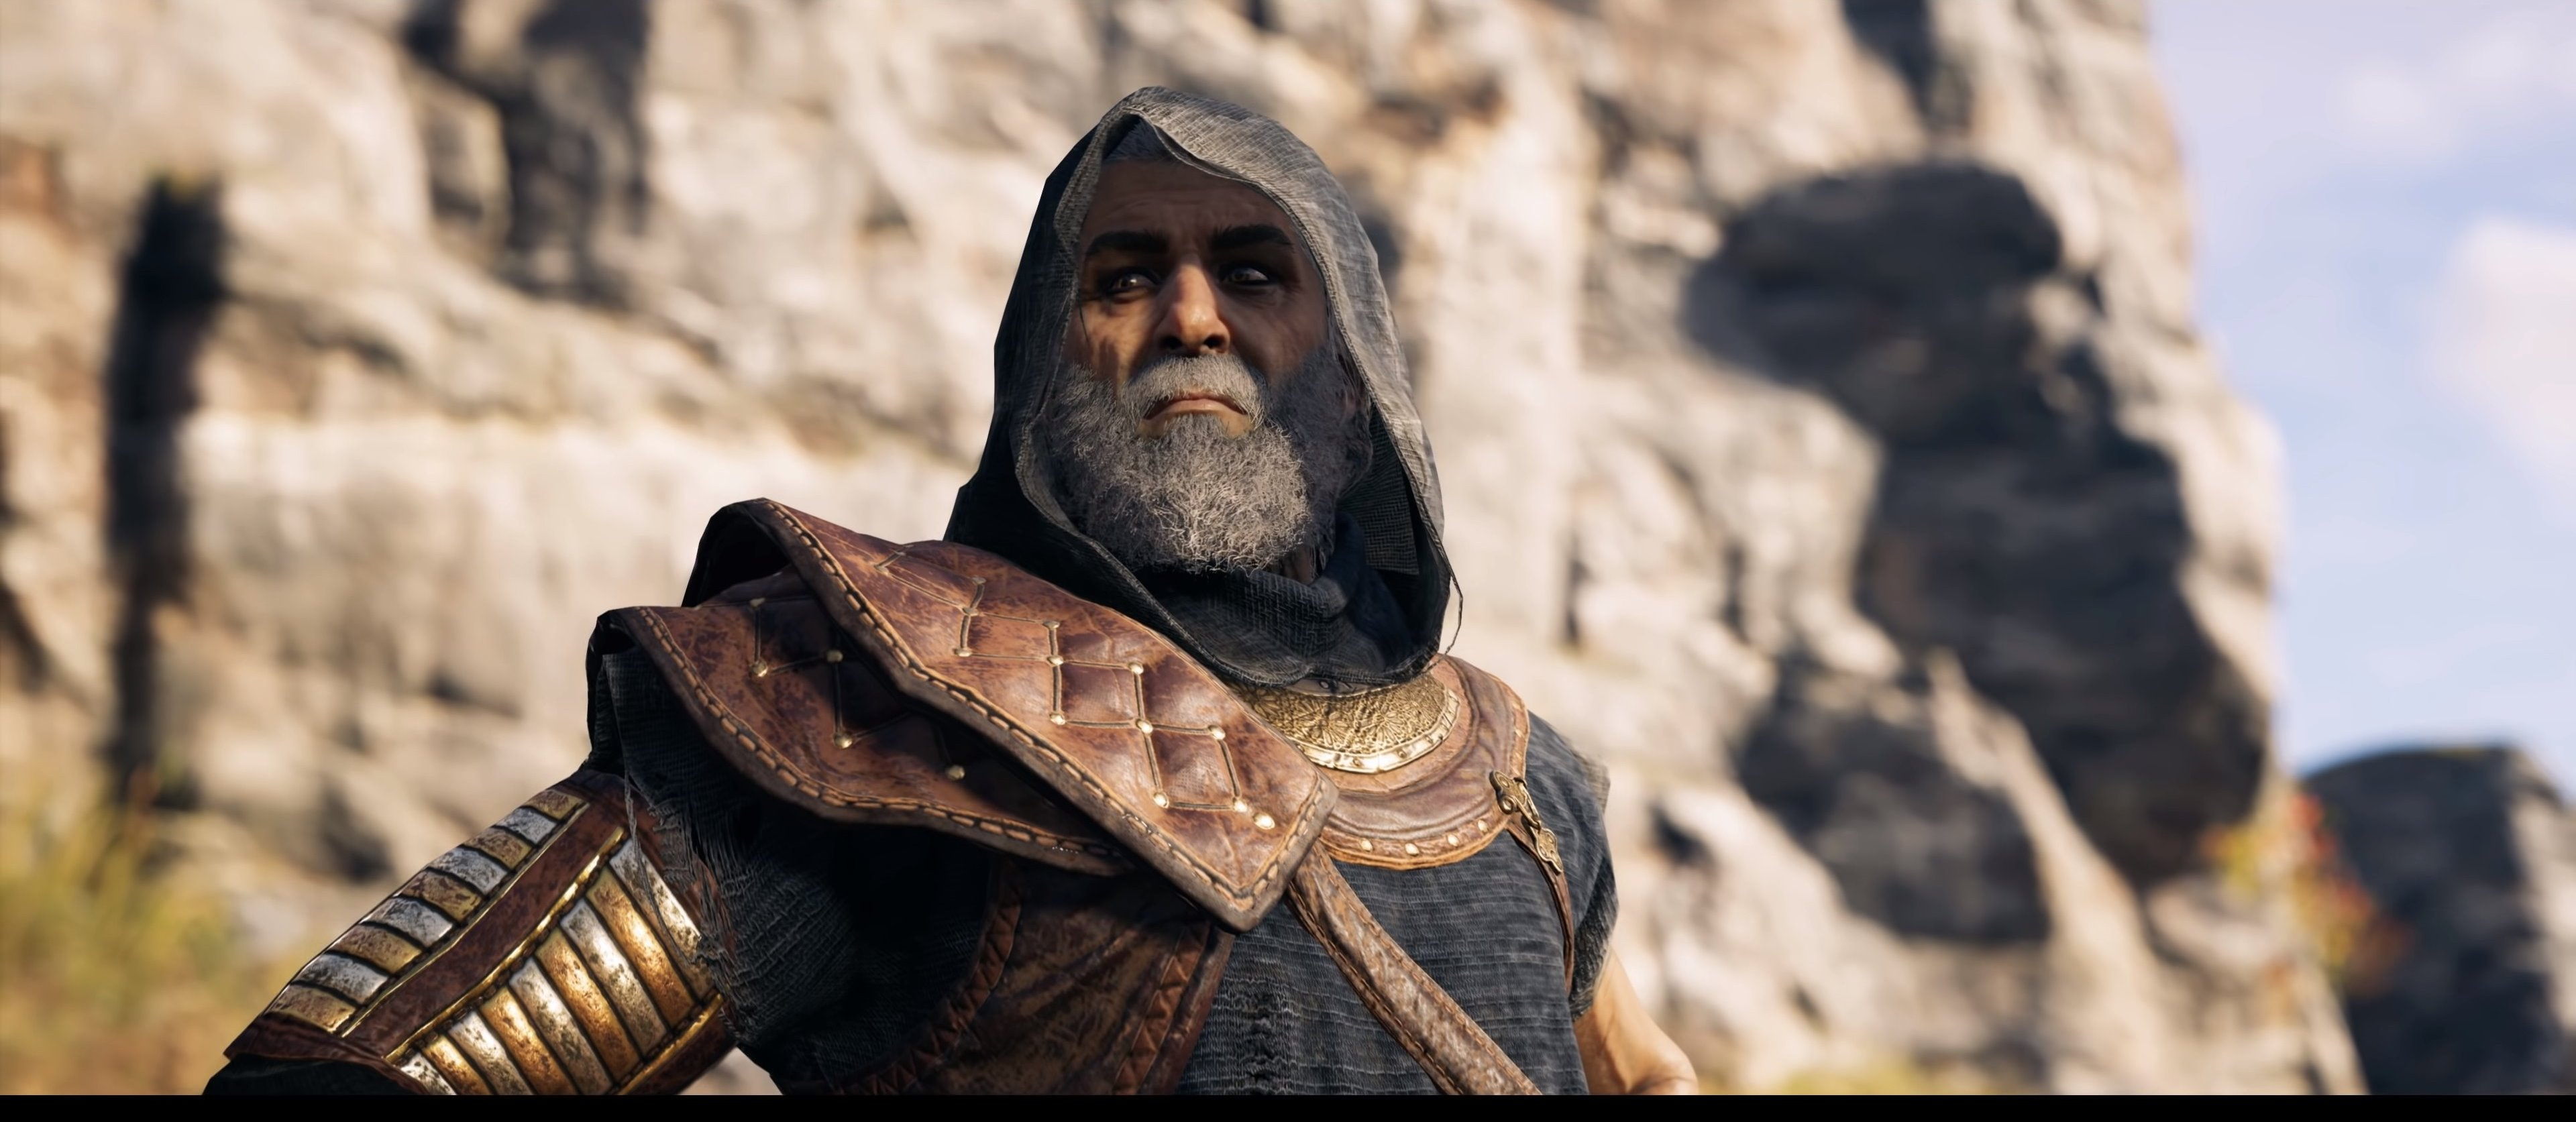 Assassin S Creed Odyssey To Begin 3 Part Story Dlc On December 4th